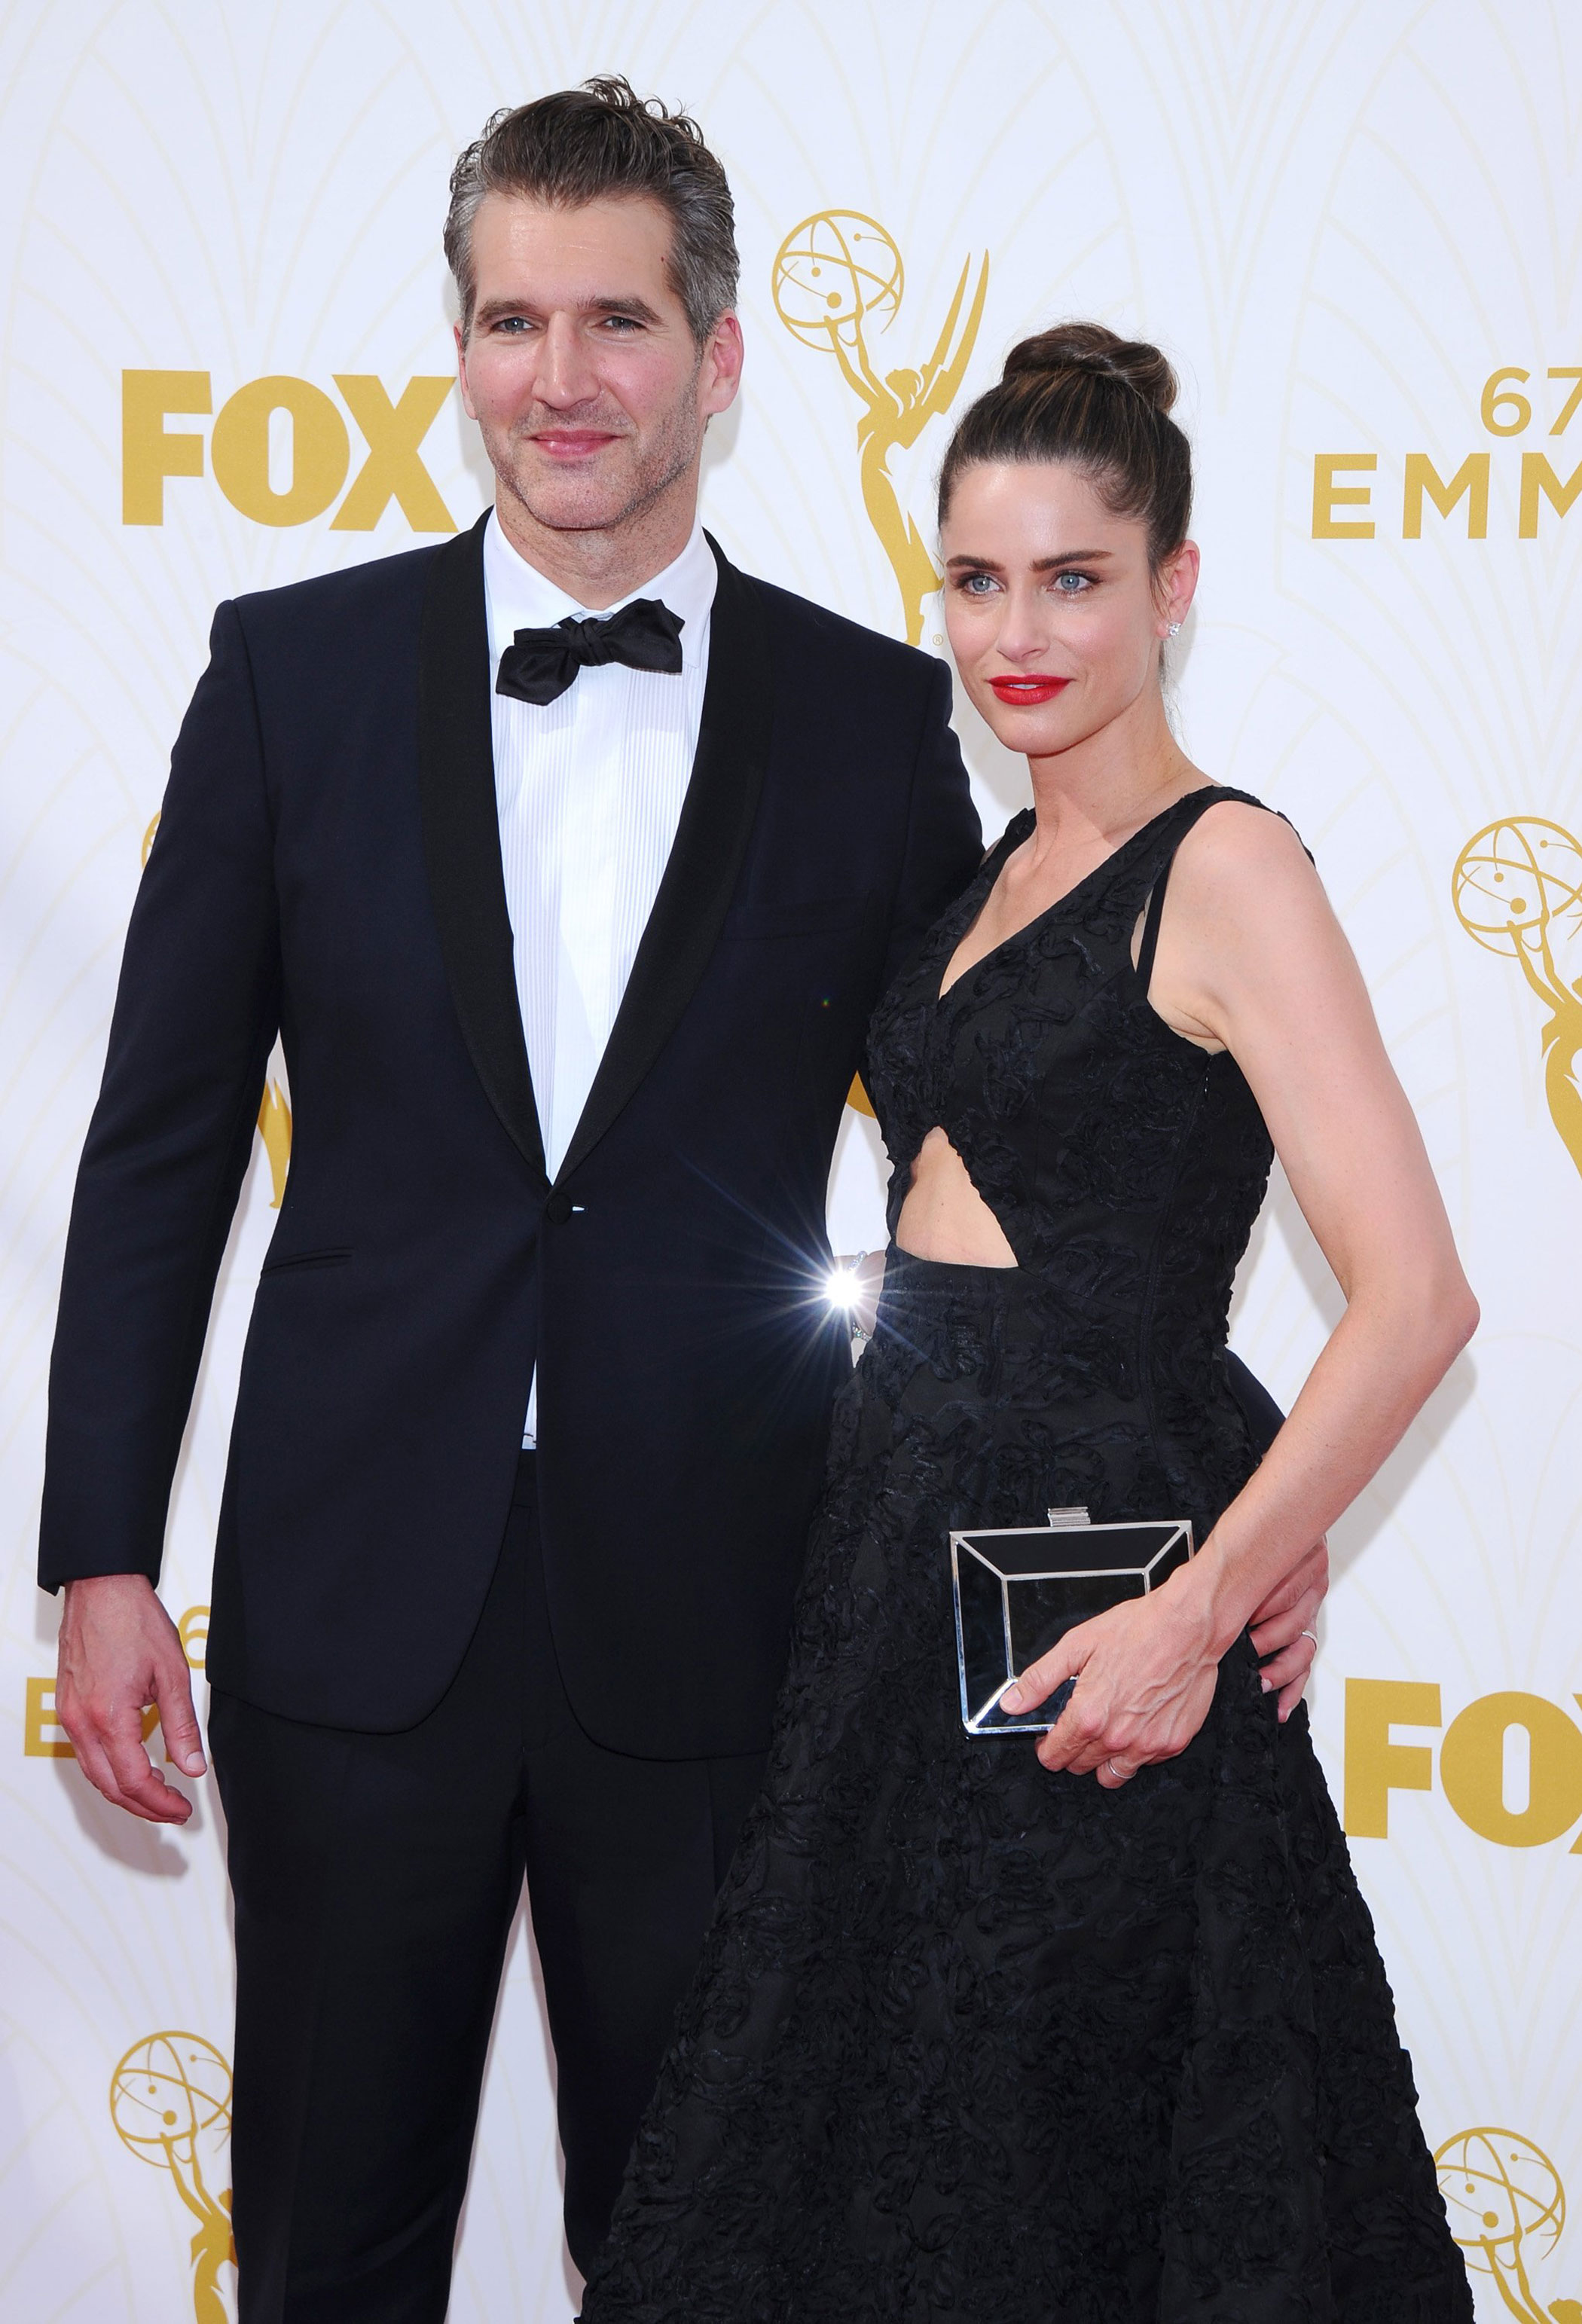 David Benioff and Amanda Peet at the 67th Emmy Award on Sept. 20, 2015 in Los Angeles.